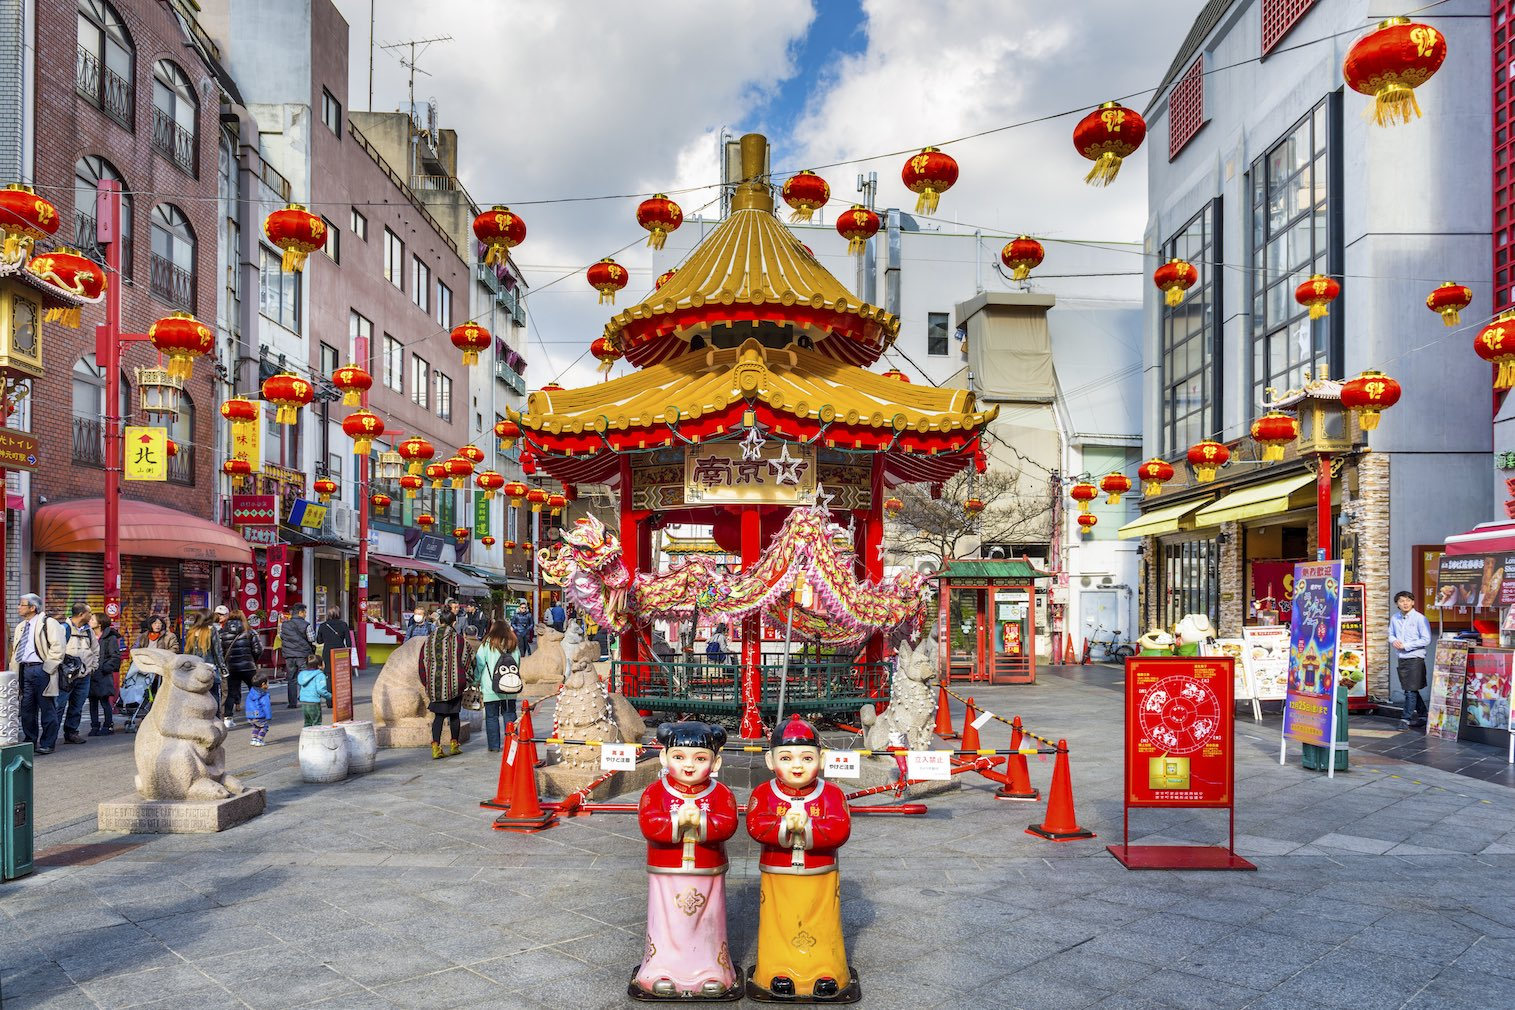 Kobe, Japan - December 17, 2015: Tourists enjoy the Nankinmachi Chinatown district of Kobe at the square and pavilion. It is one of three designated Chinatowns in Japan.